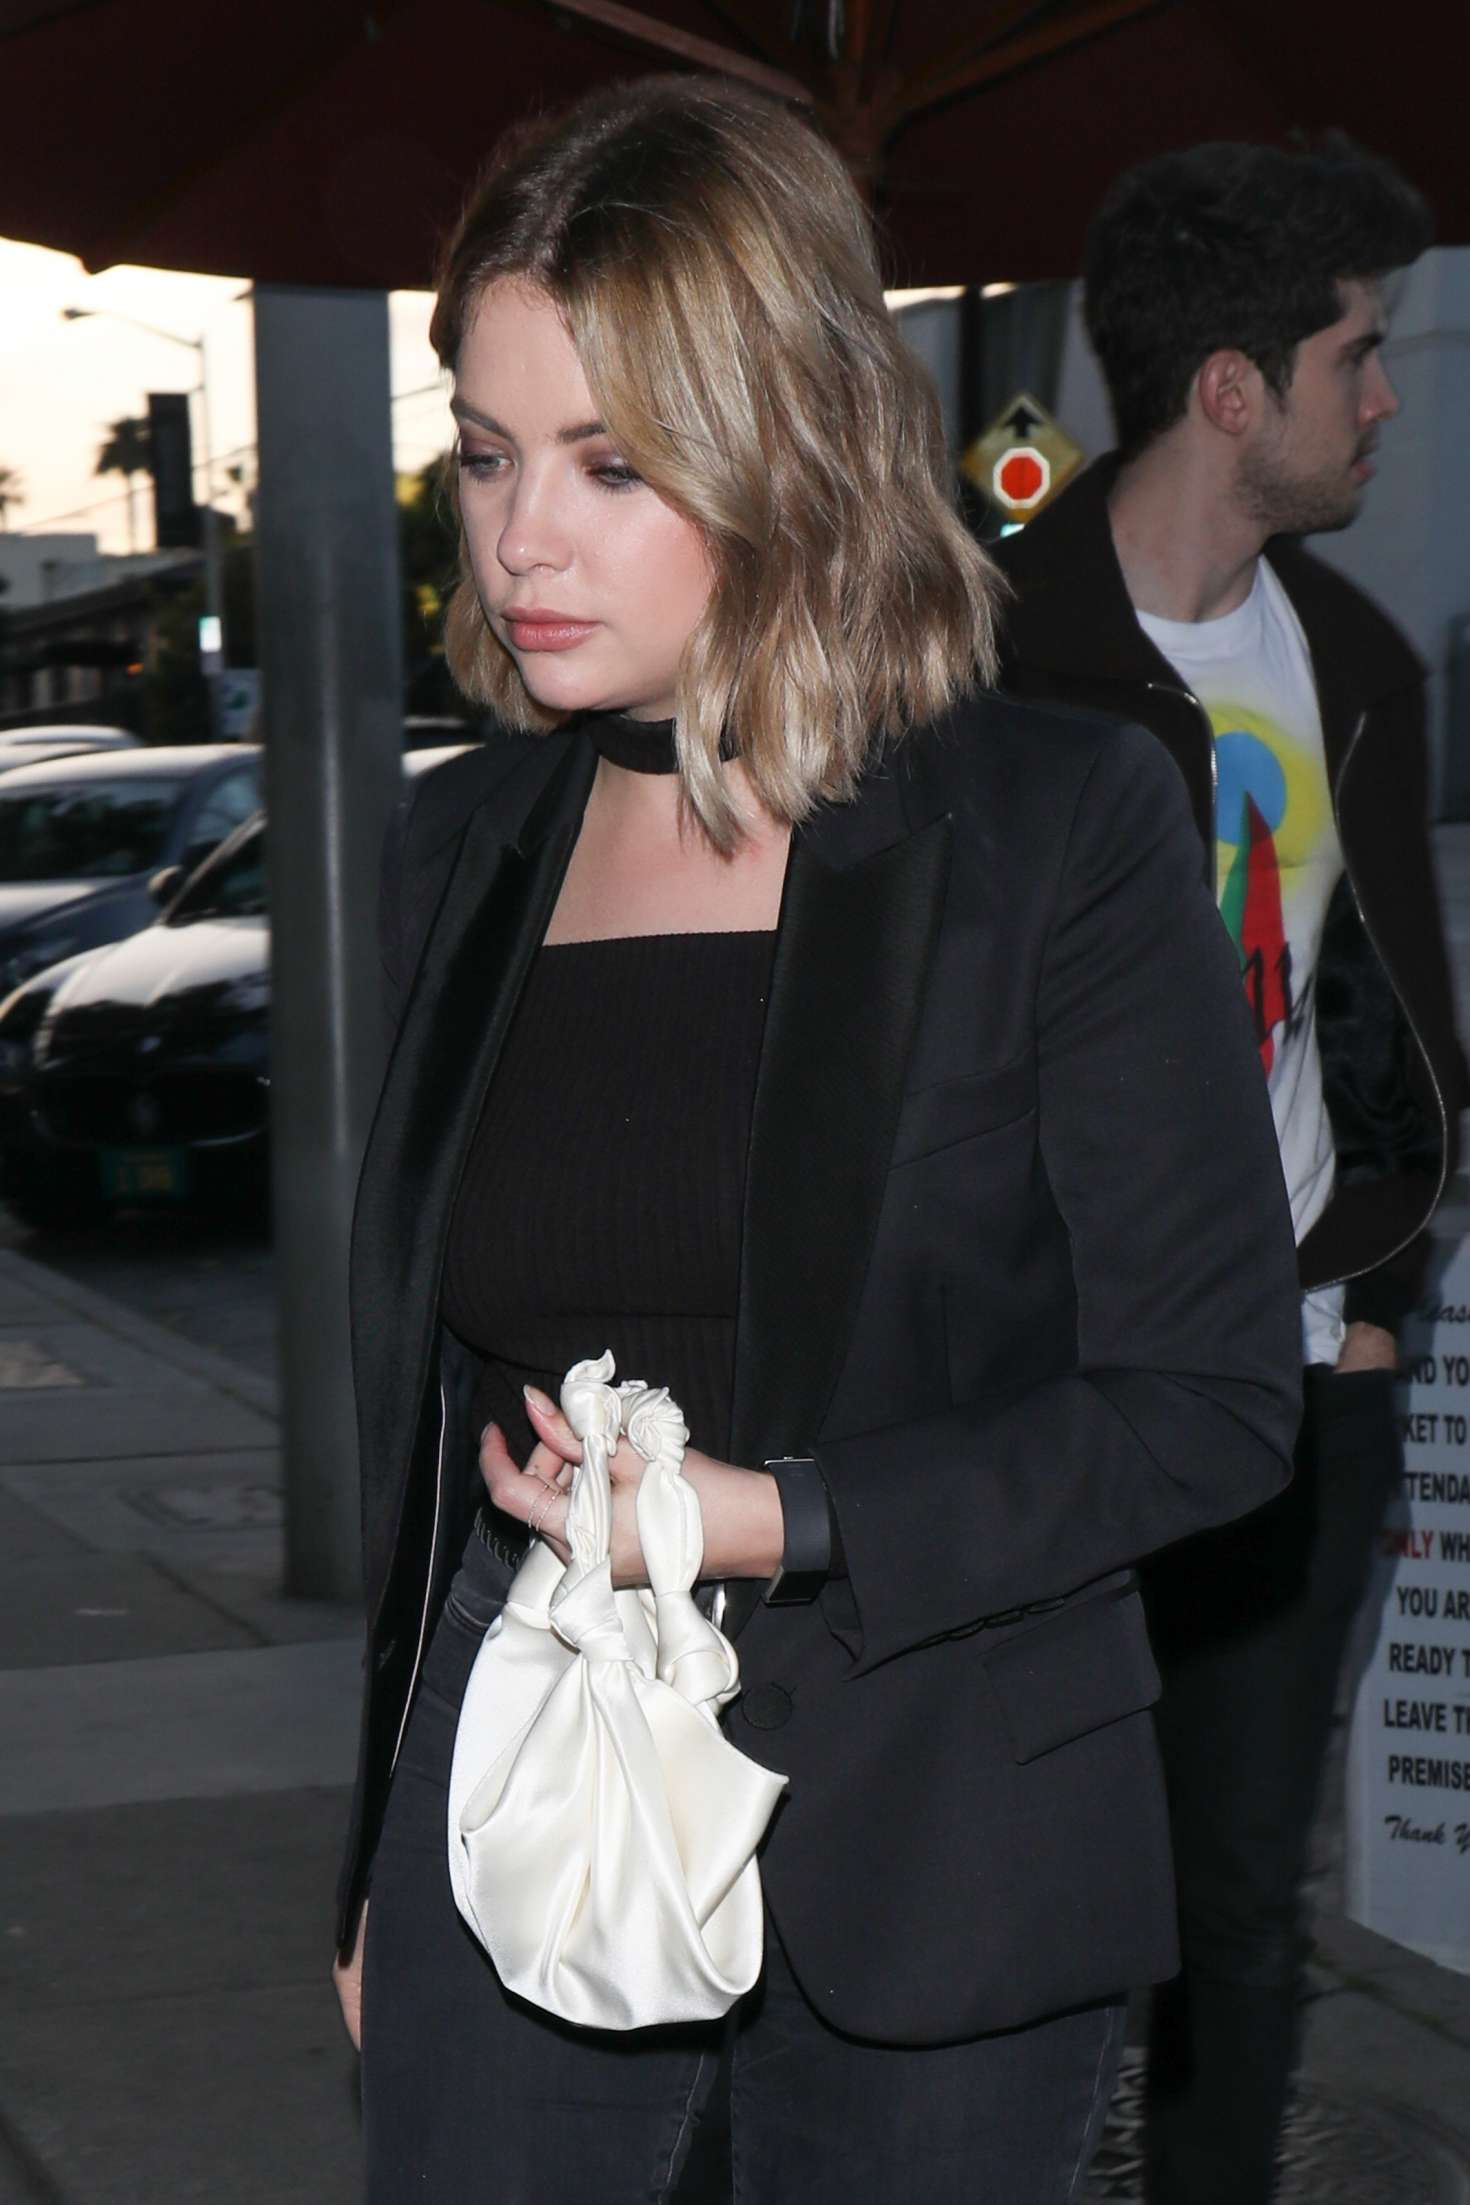 Ashley benson arriving to catch la for dinner in la - 2019 year